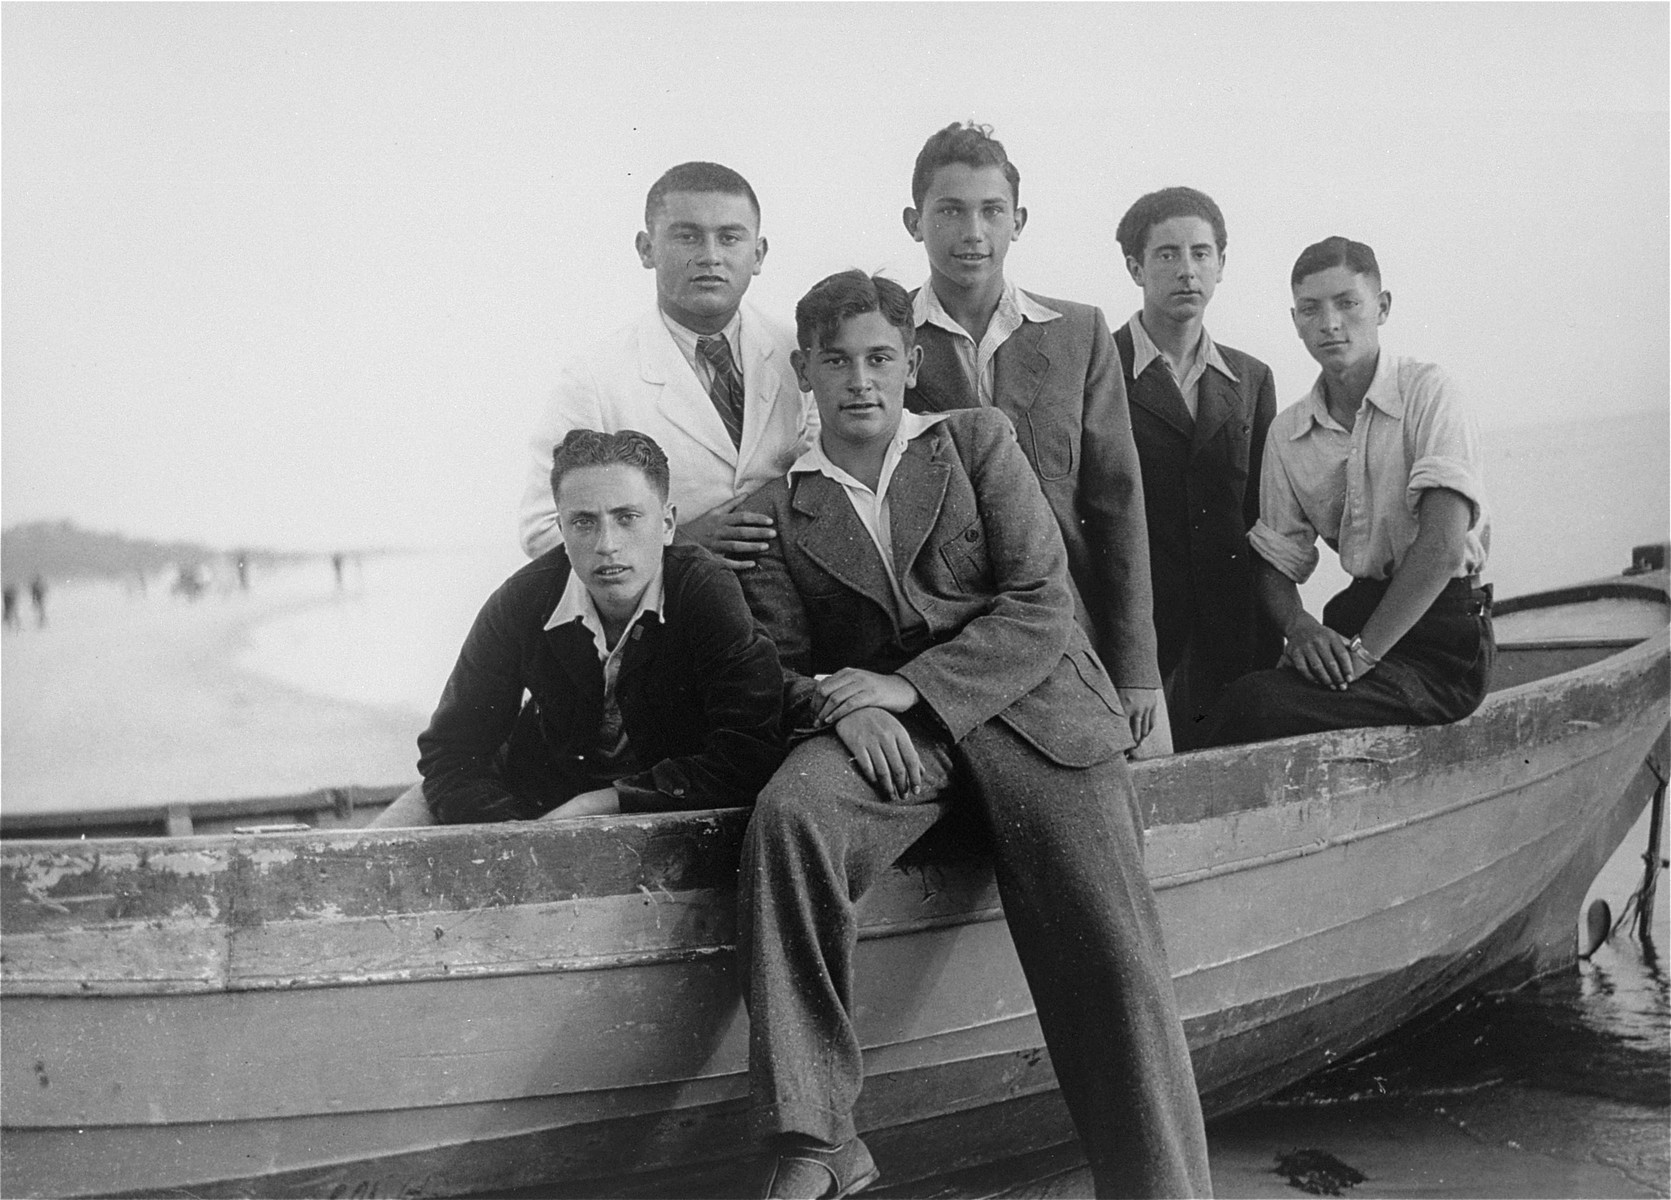 Five Jewish youth pose in a row boat at a vacation spot in Lithuania.